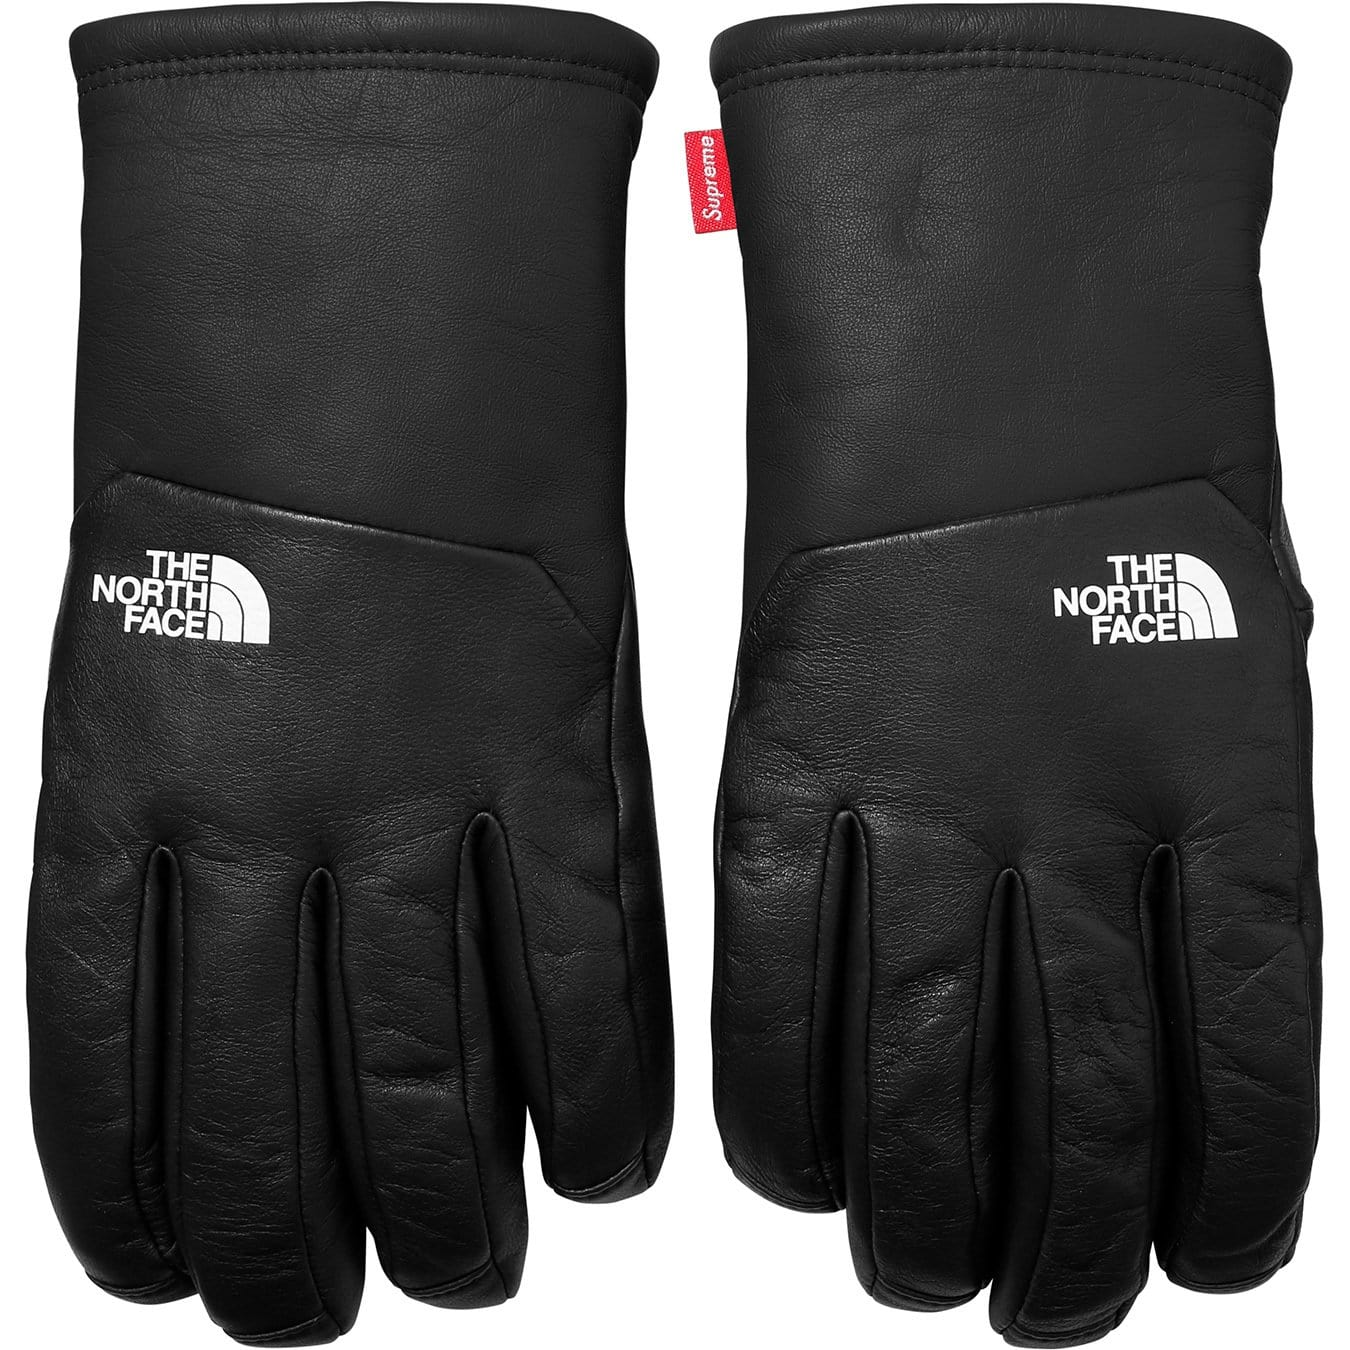 Supreme-The North Face Leather Gloves - Black - Kick Game